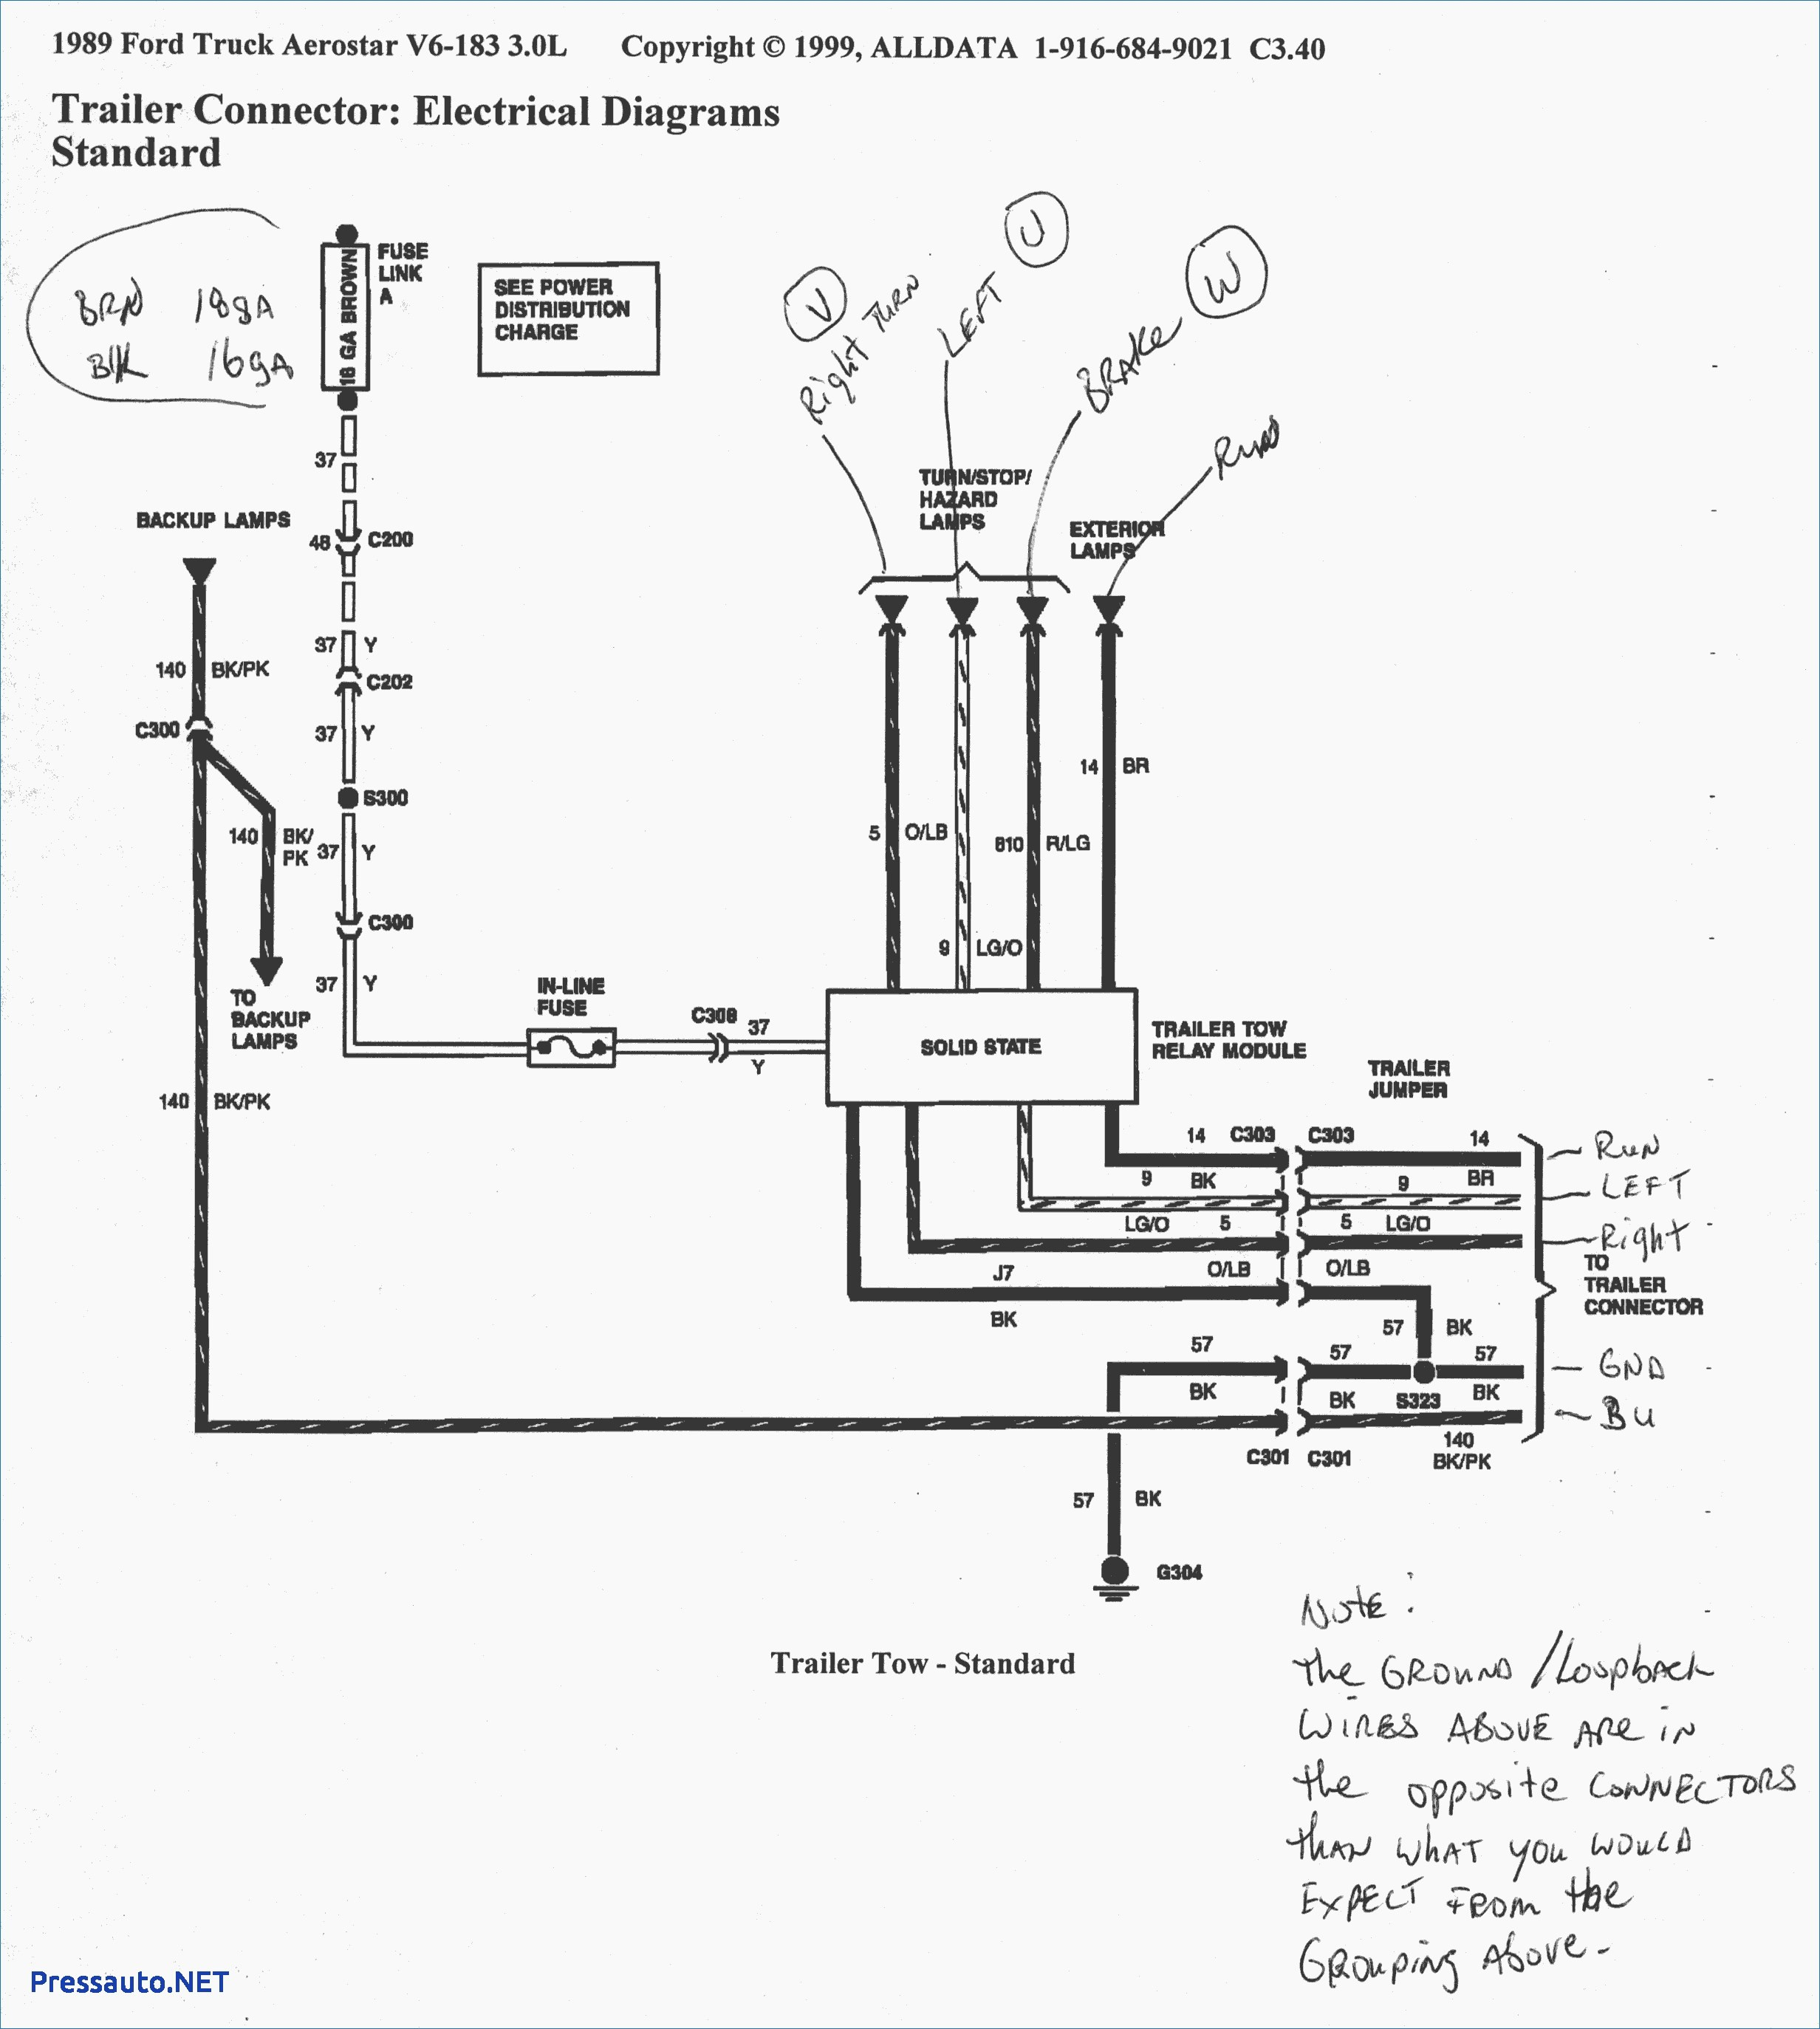 Truck Camper Wiring Diagram Wiring Diagram Euro 13 Pin Plug for ifor Williams and Trailer Of Truck Camper Wiring Diagram